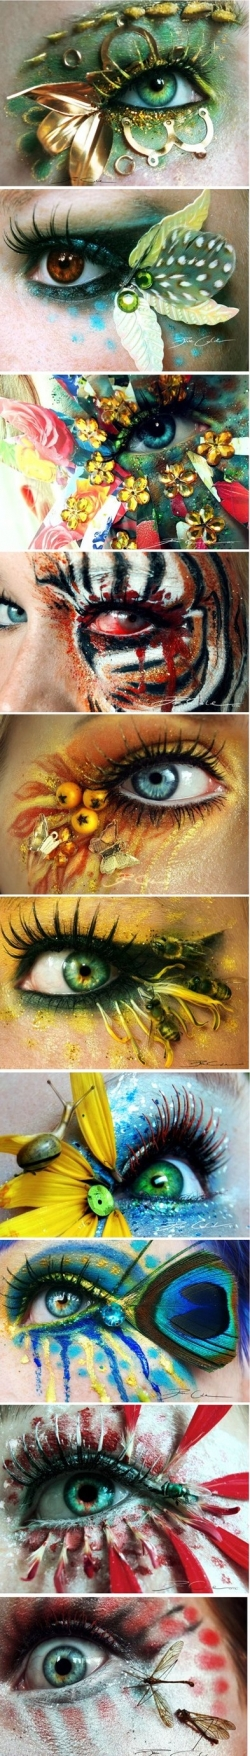 Miscellaneous pictures - Eye makeup art